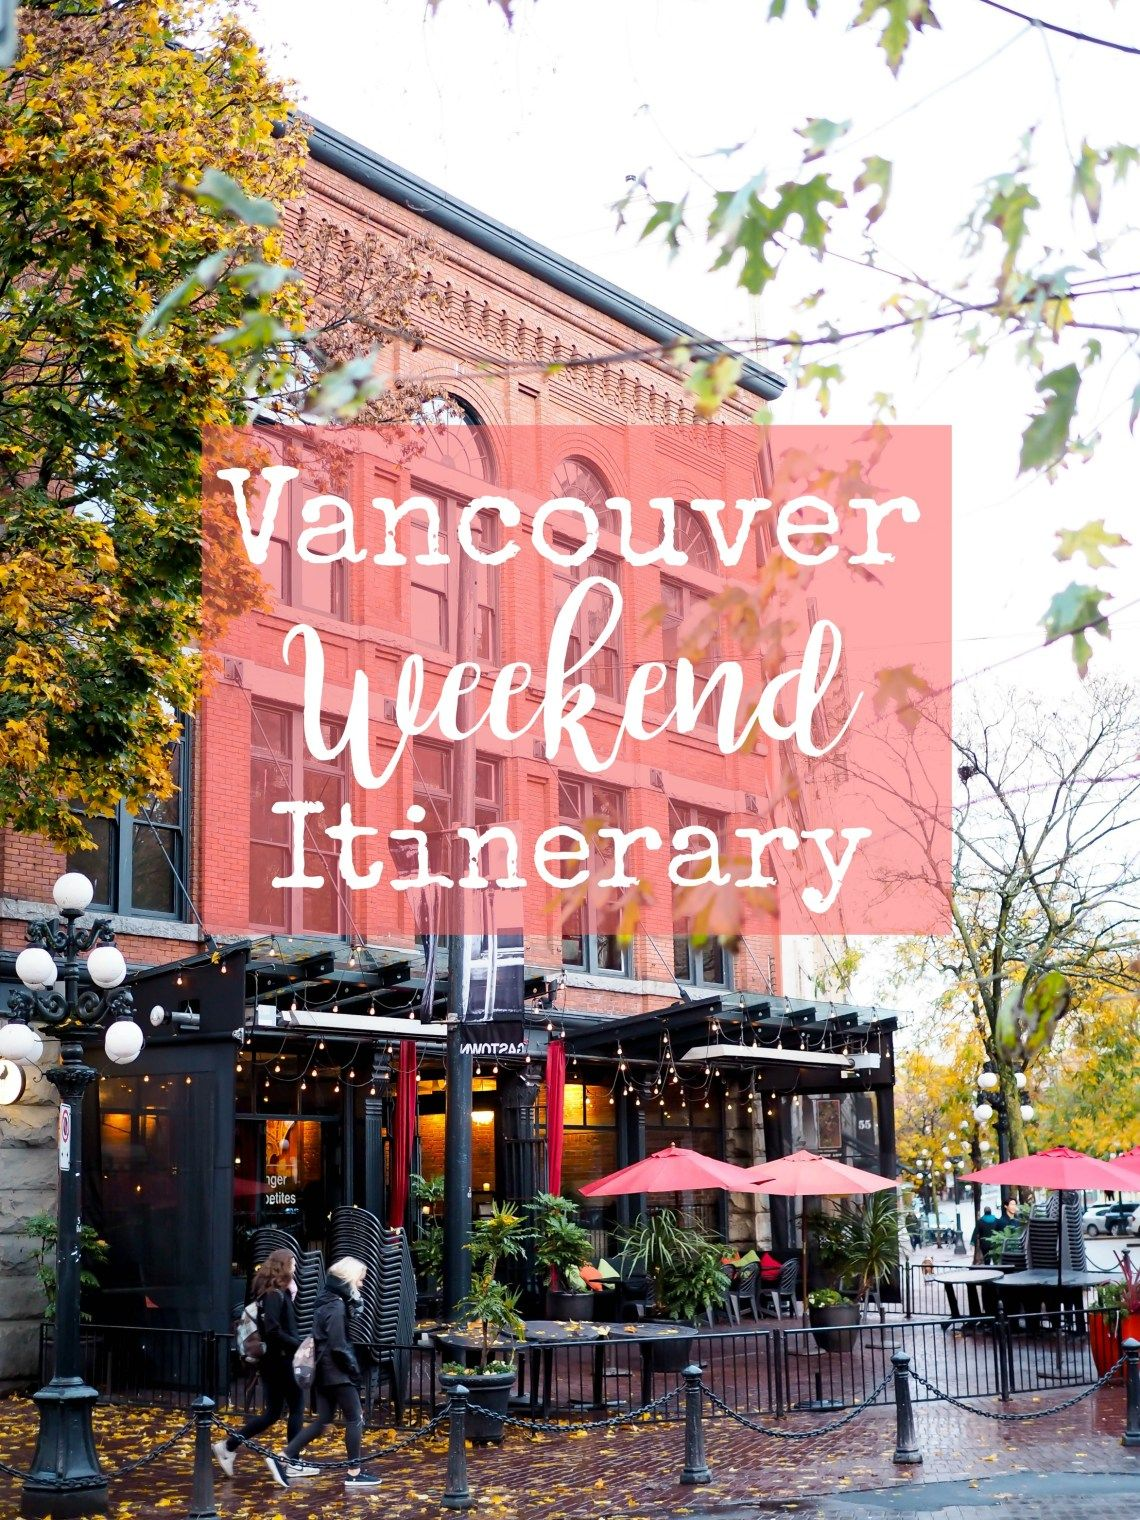 Vancouver Weekend Itinerary Appetites Abroad Visit Vancouver Vancouver Travel Canada Travel